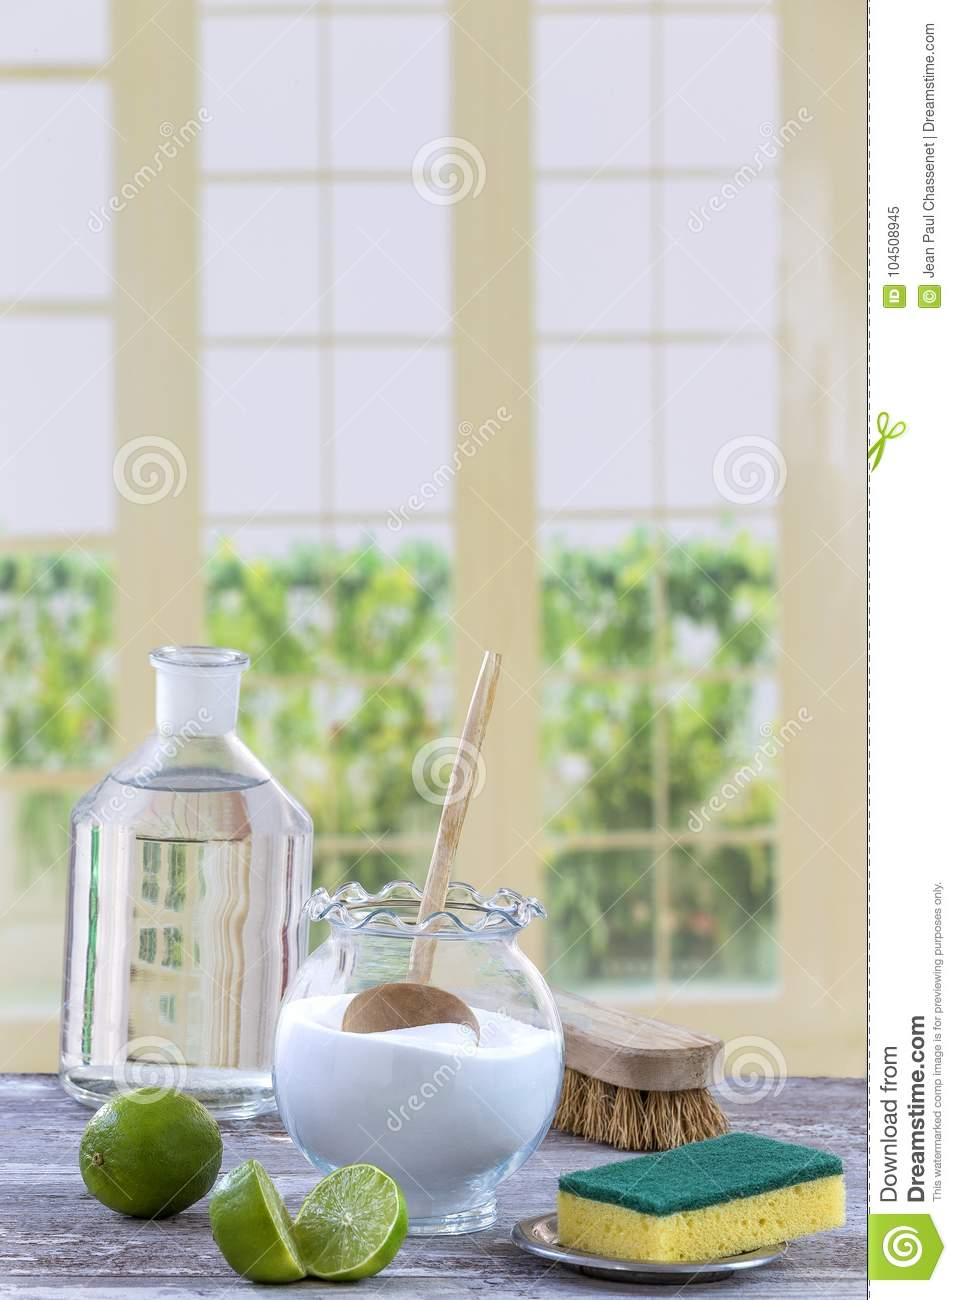 Eco-friendly Natural Cleaners Baking Soda, Lemon And Cloth On Wooden ...